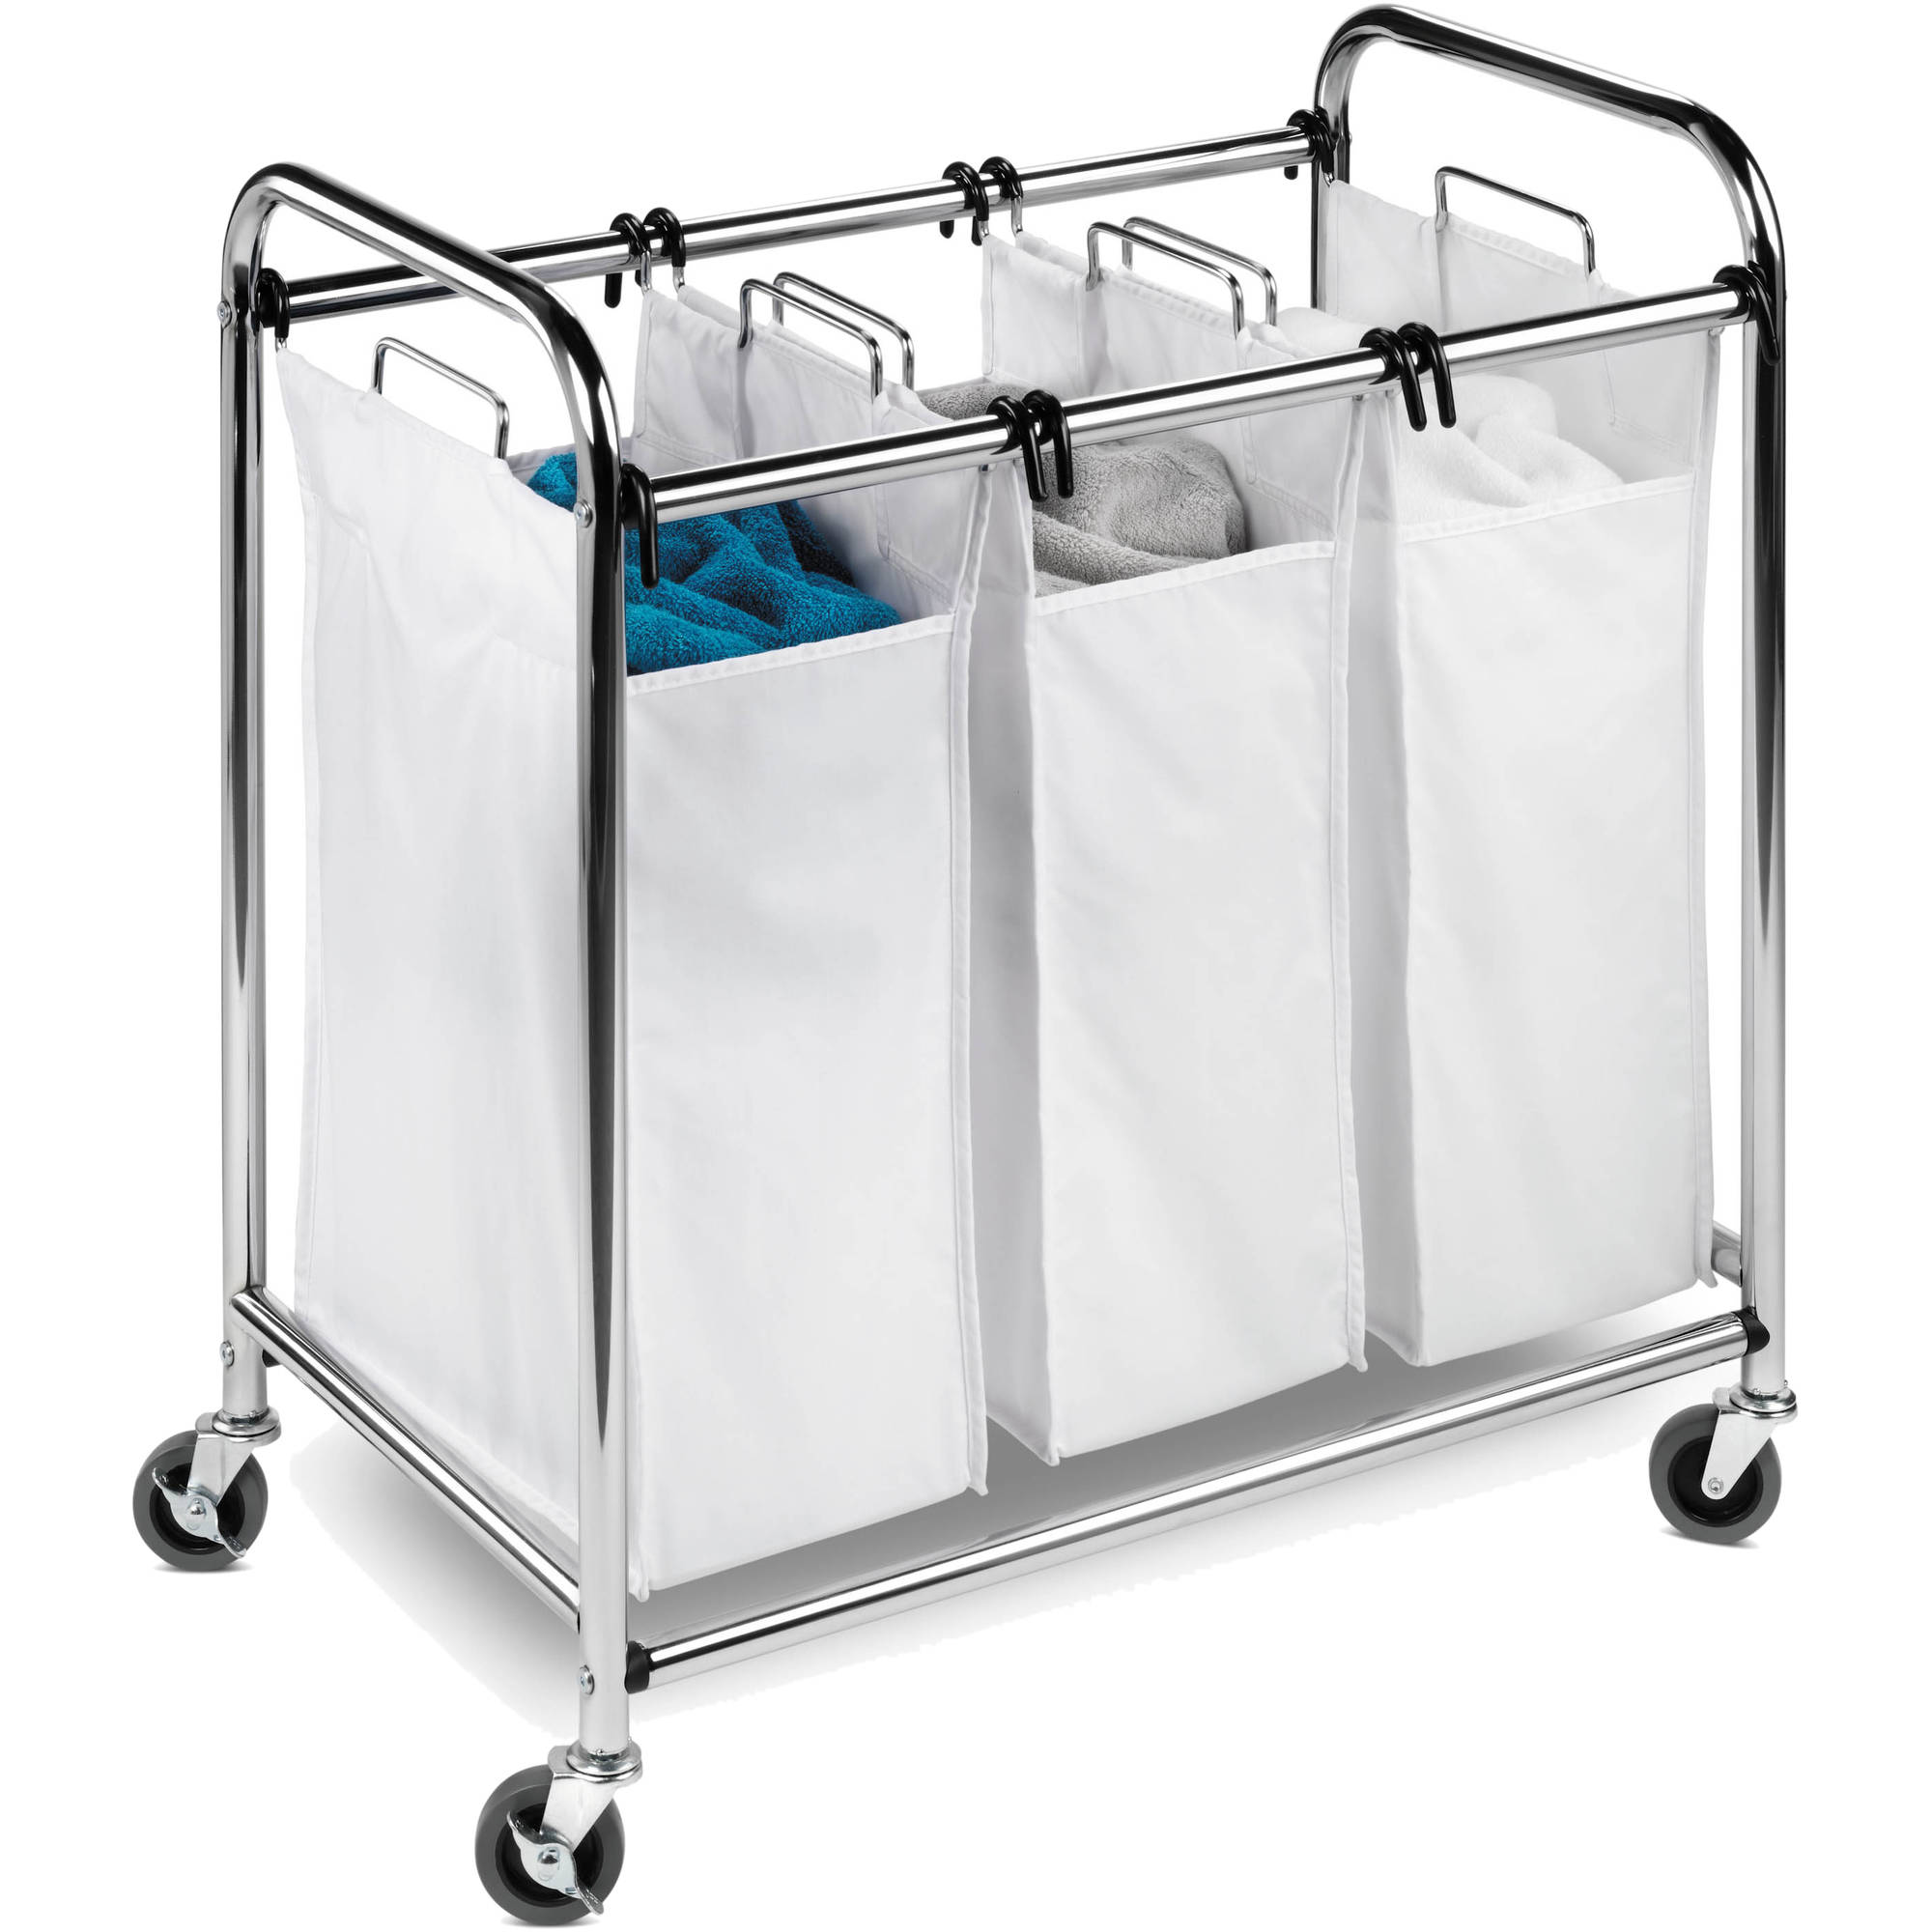 Dirty Laundry Baskets Honey Can Do Commercial Grade Triple Laundry Sorter Chrome White